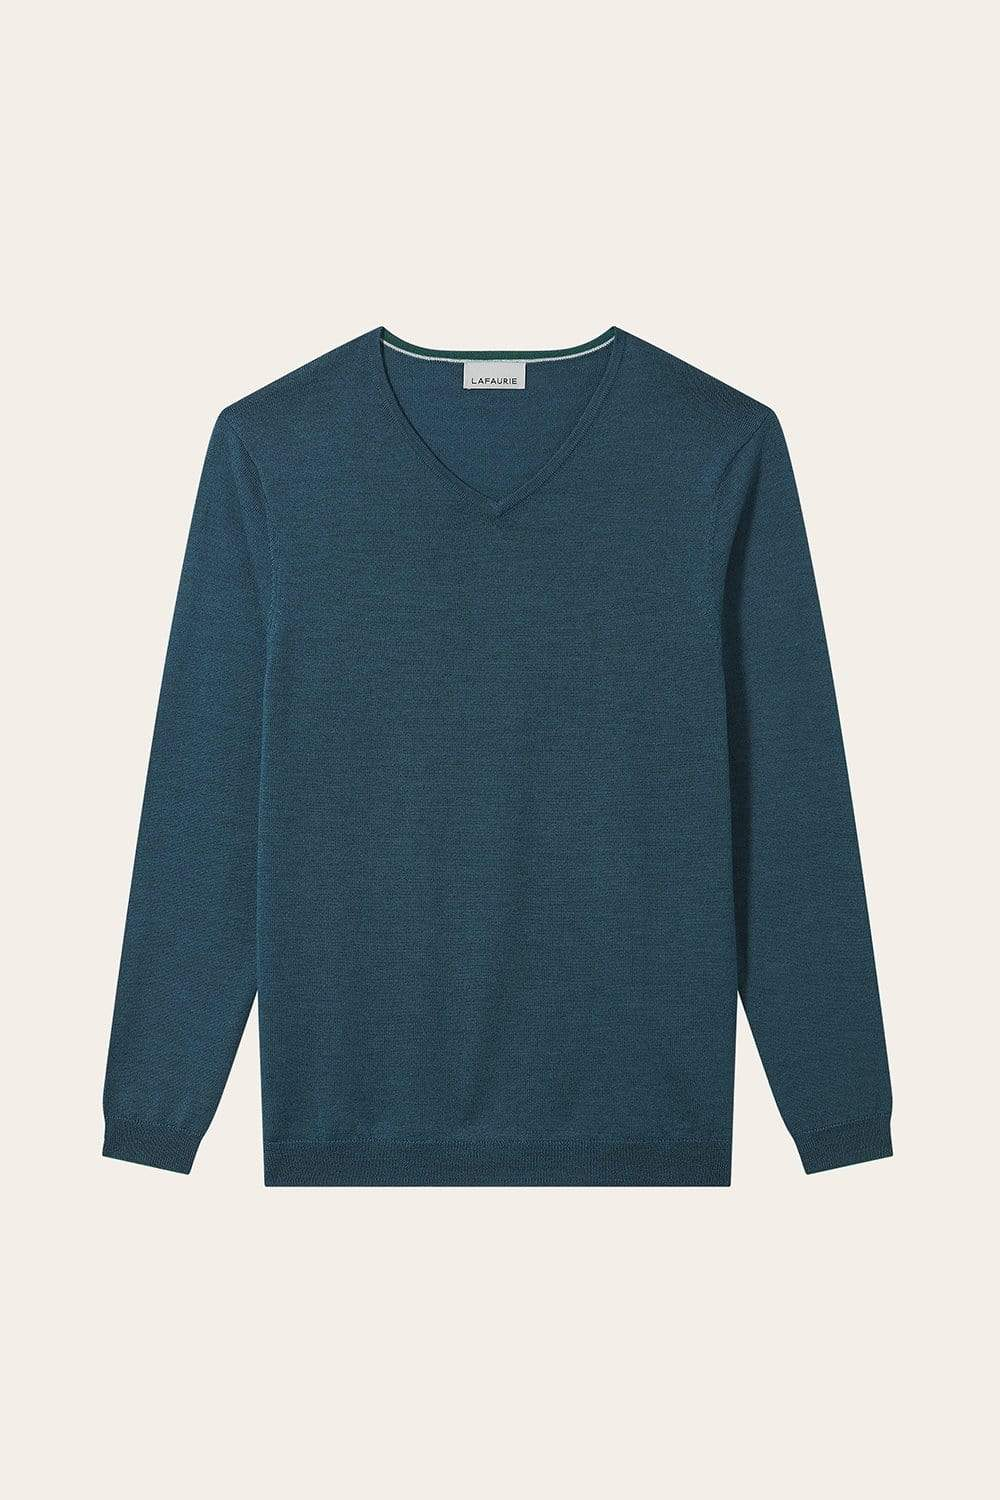 Tuck Sweater - Cedre